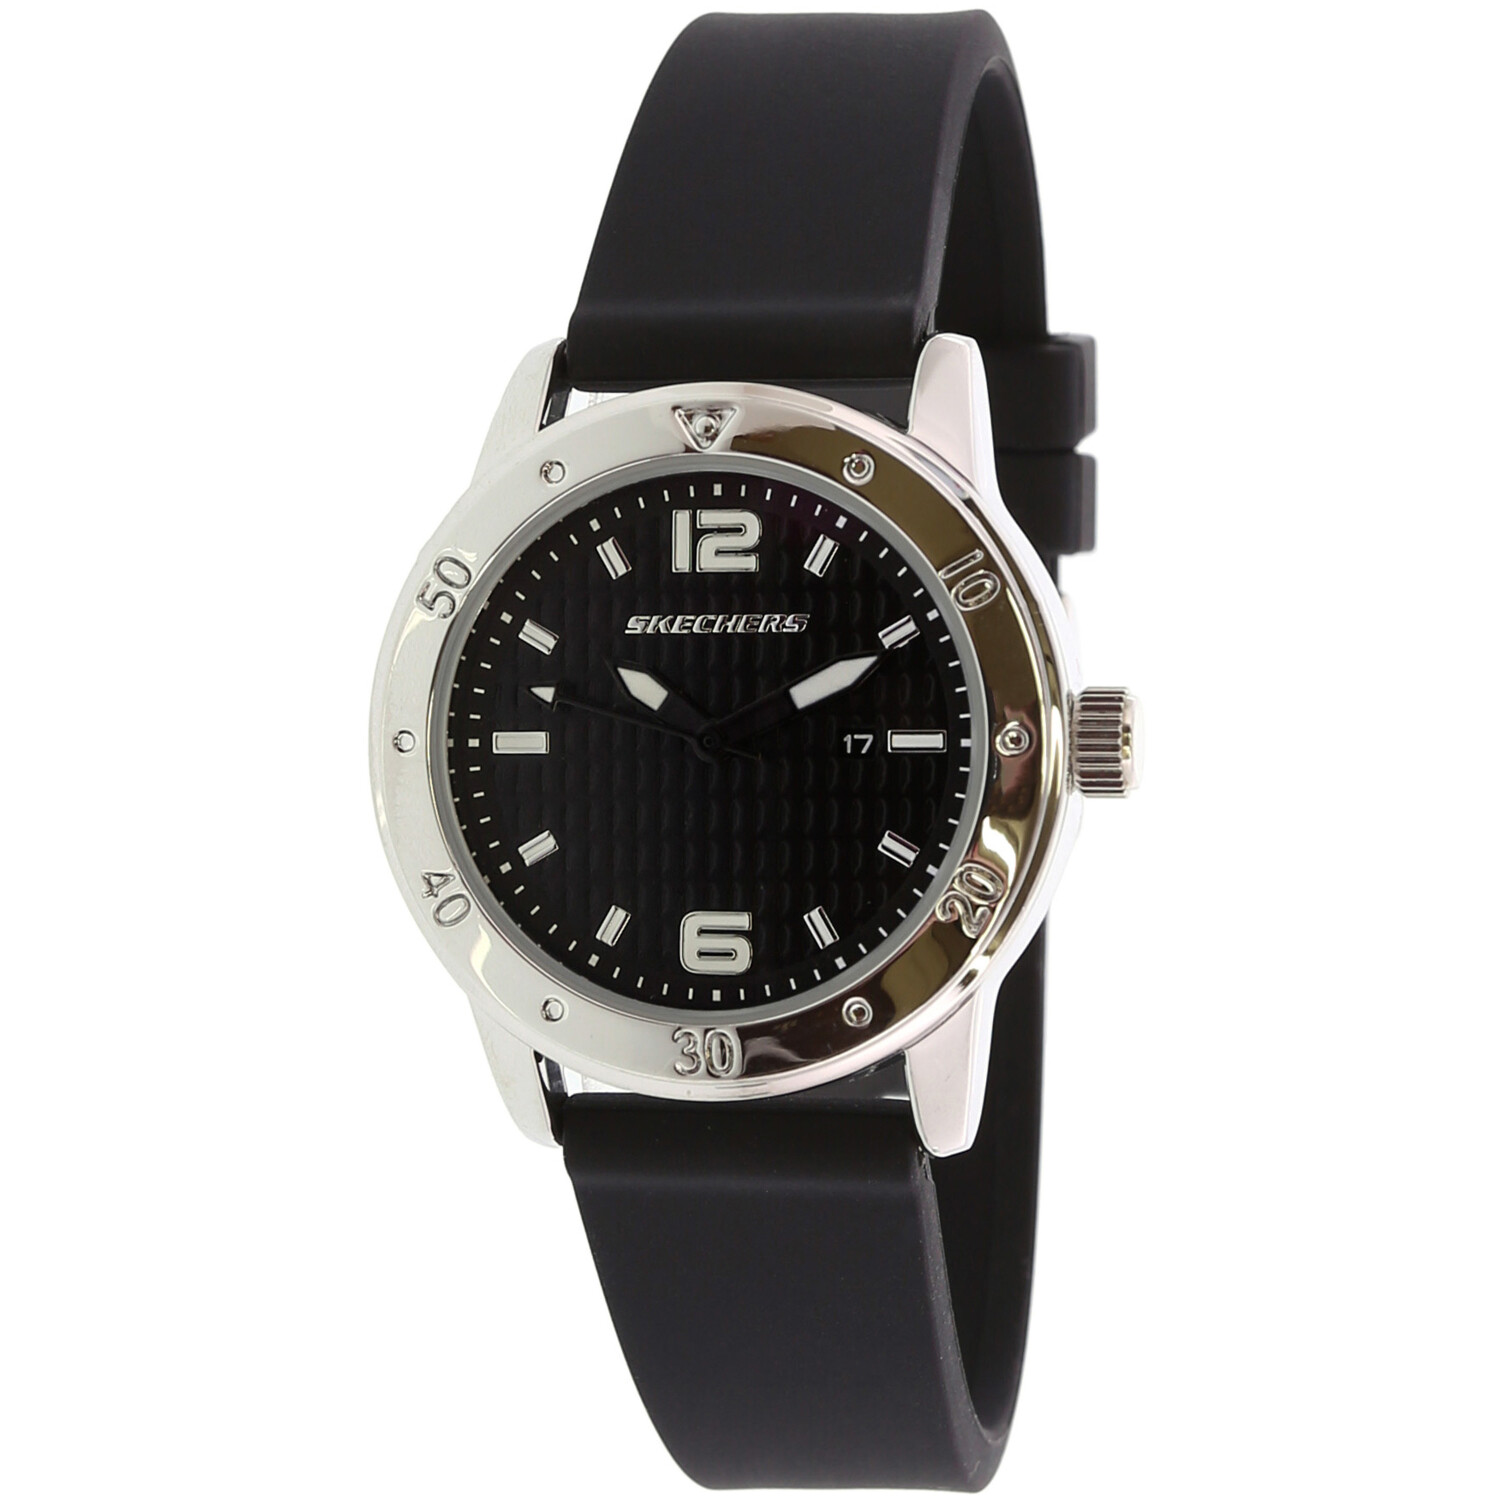 Skechers Watch SR6049 Redondo, Quartz Analog Display, Water Resistant, Day and Date Display, Silicone Band, Black